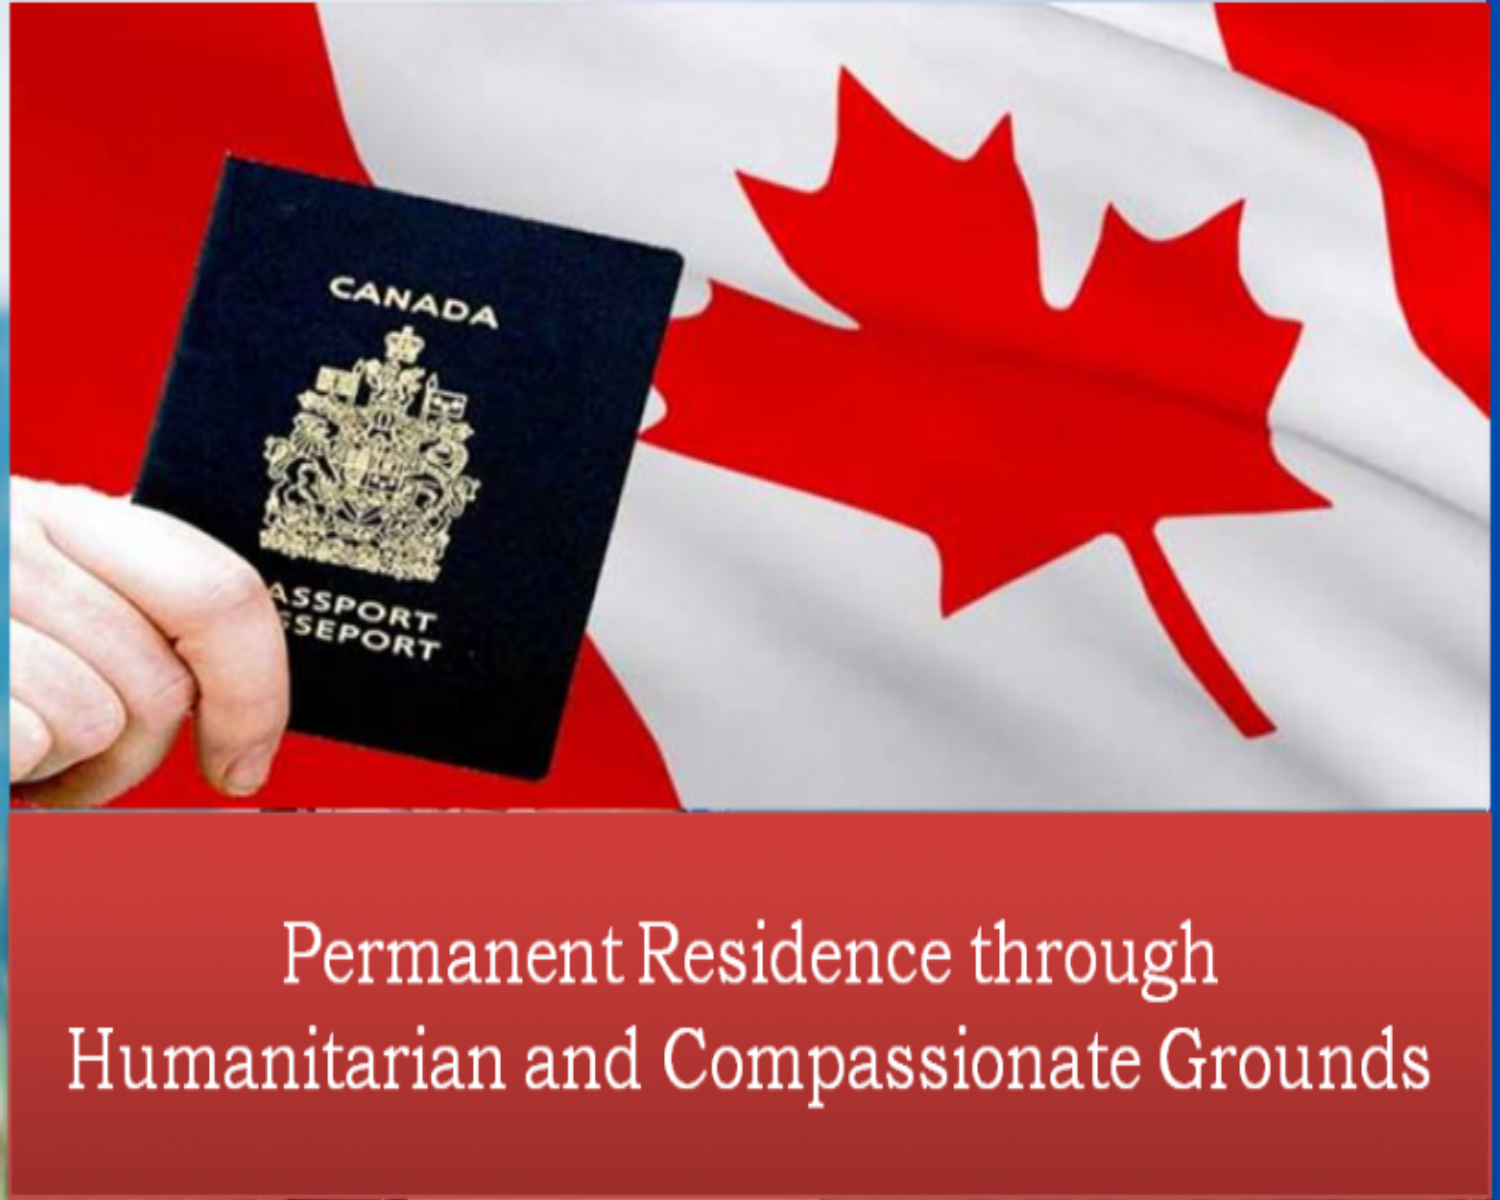 Canada PR on Humanitarian and Compassionate Grounds